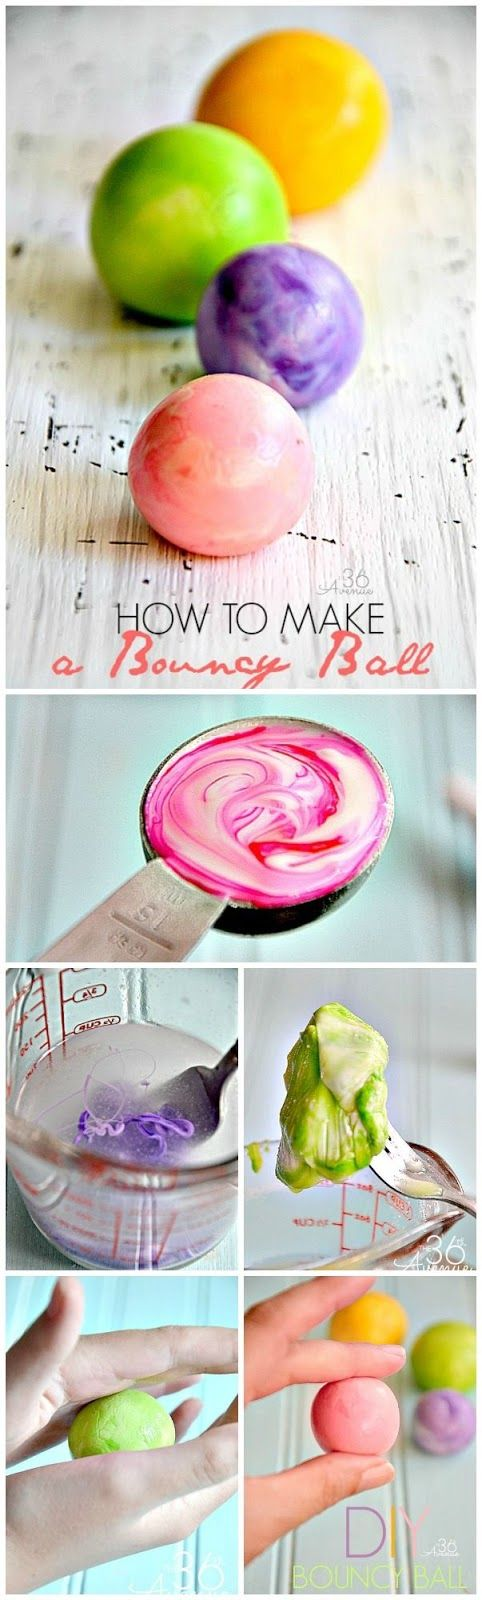 How to make a bouncy ball! Kids favorite! - Crafting Is My Life